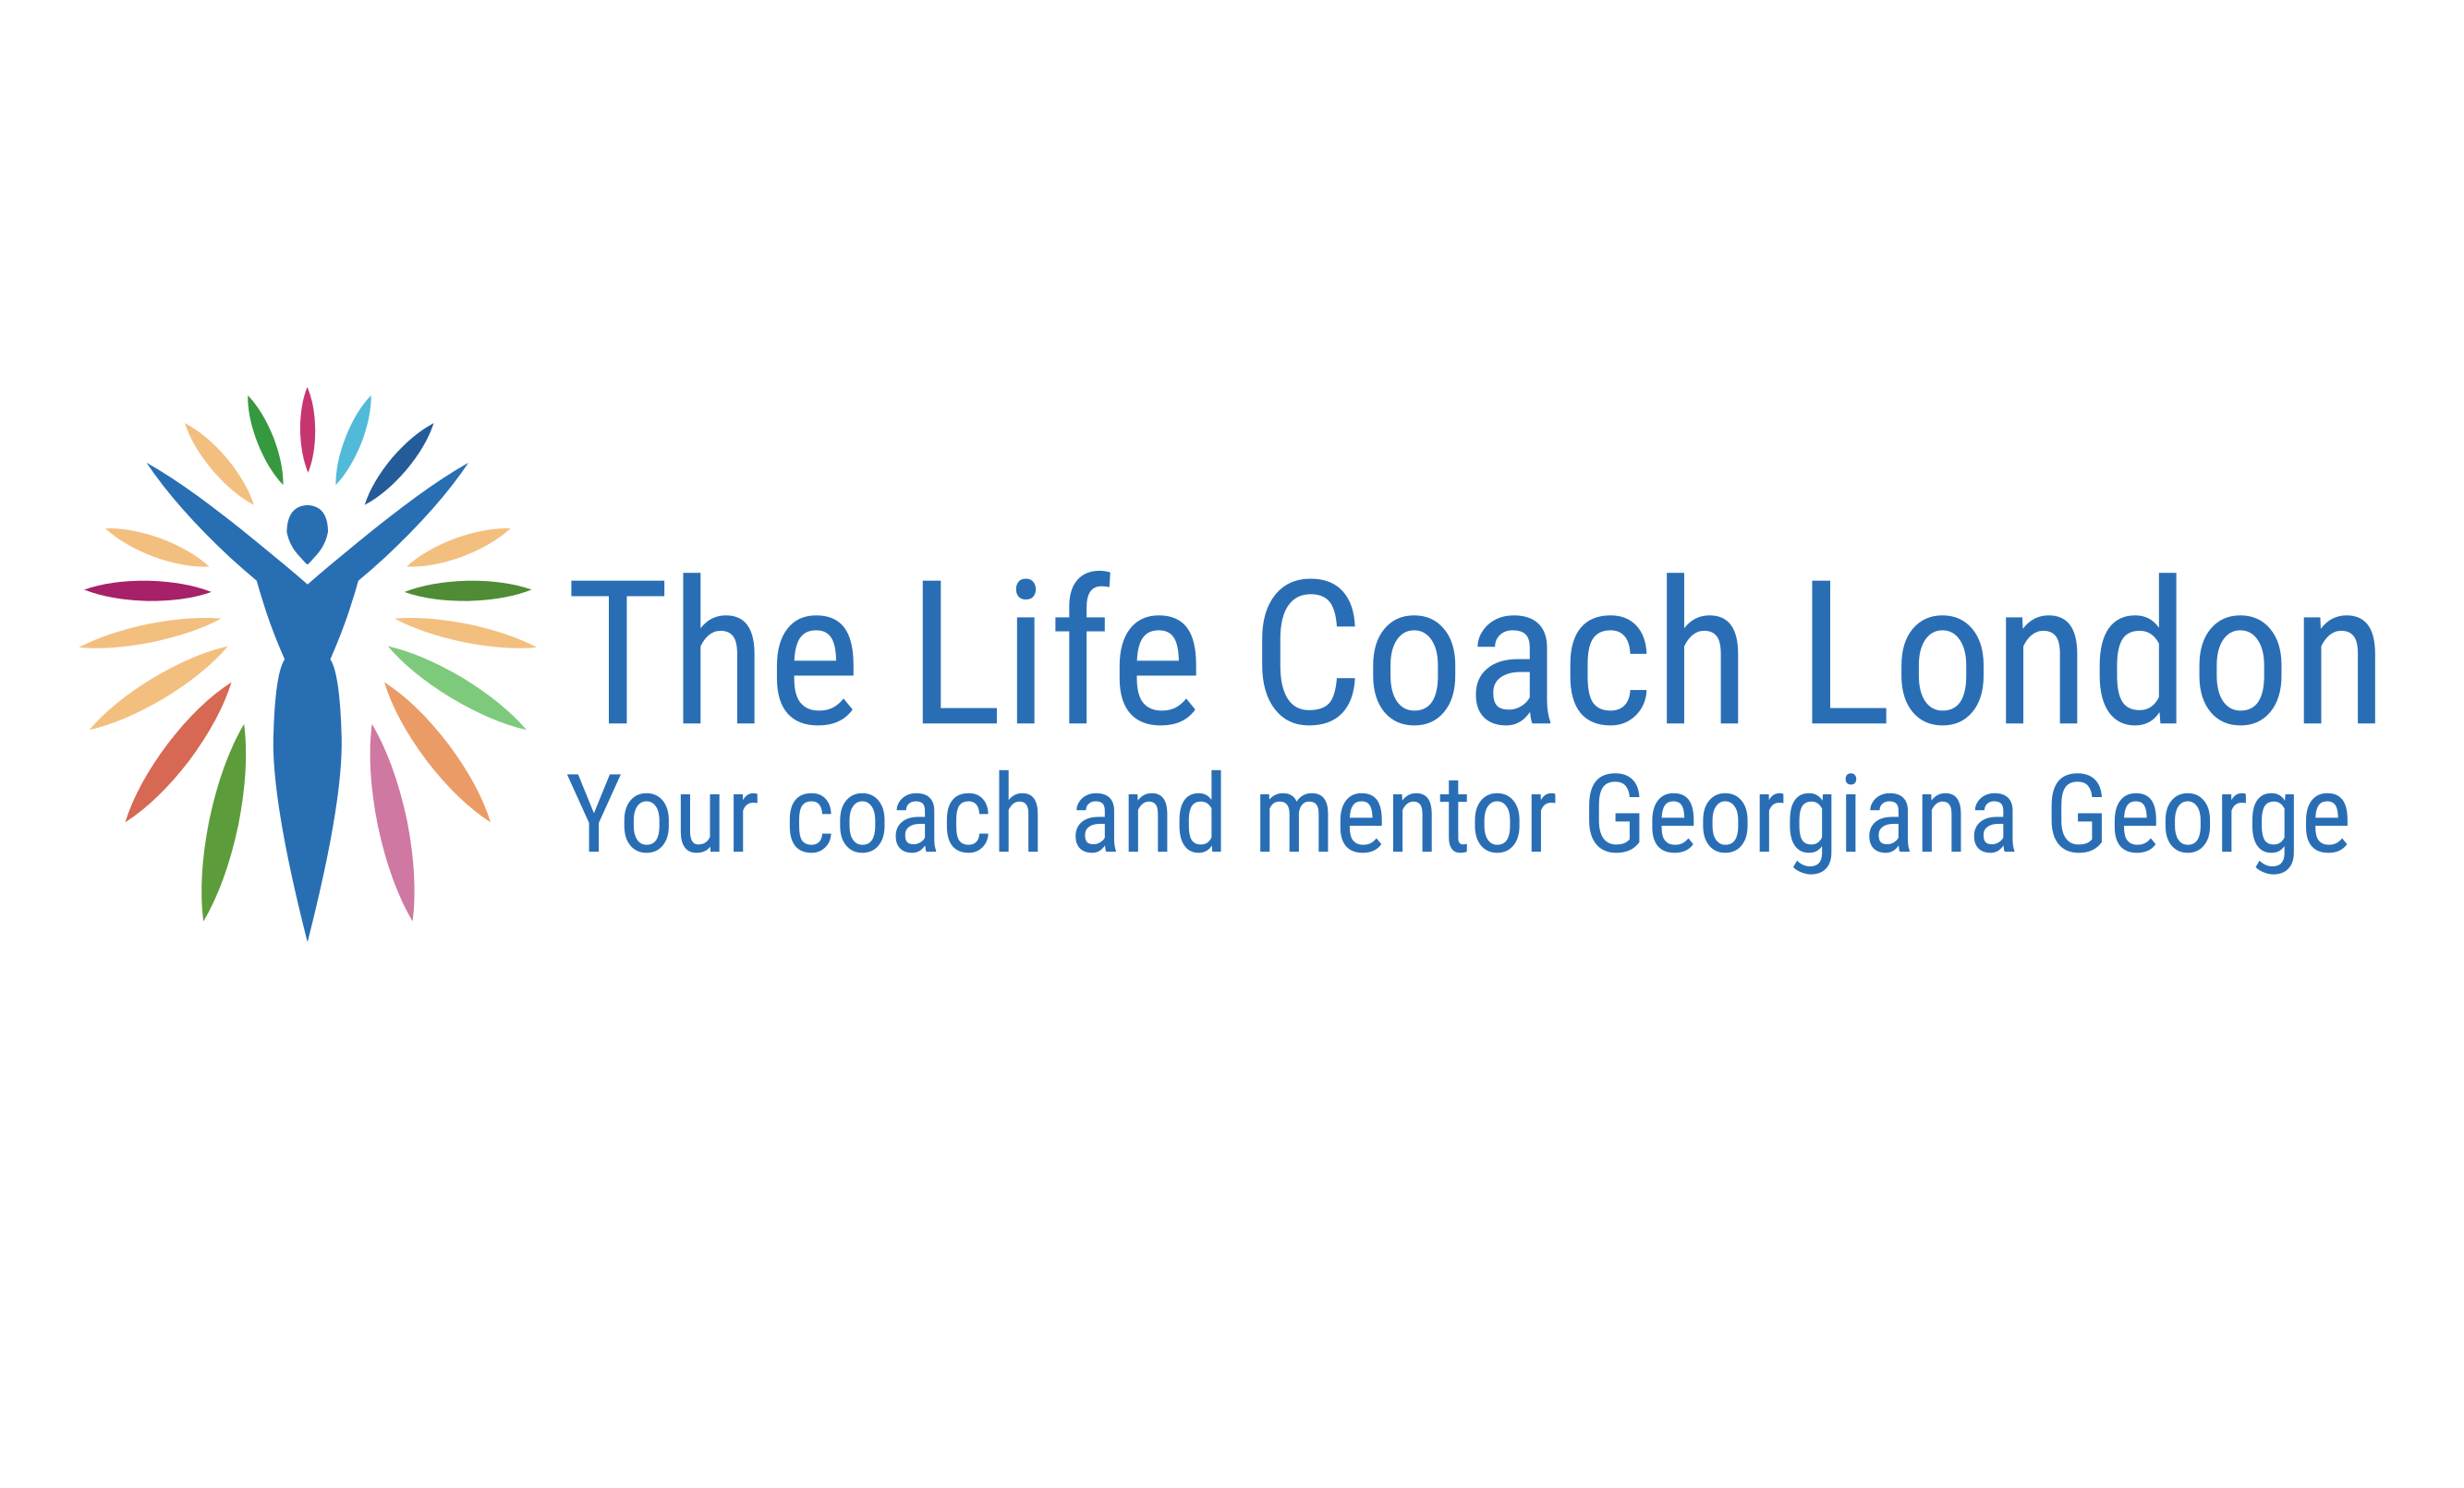 The Life Coach London